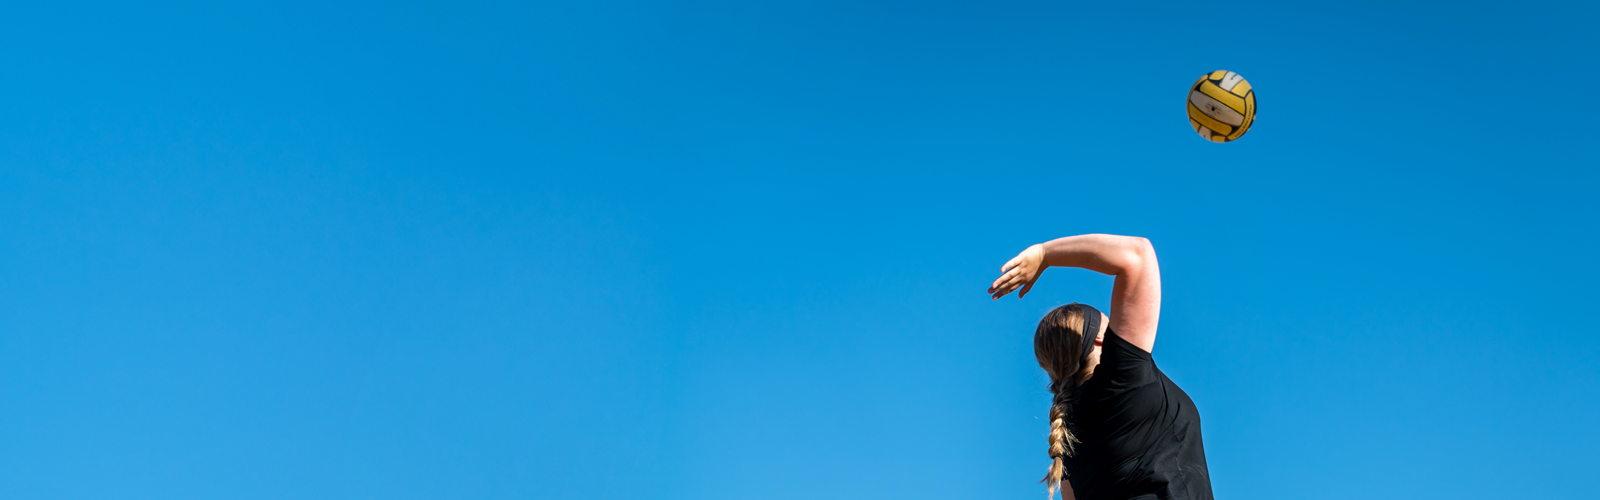 An image of a woman spiking a yellow volleyball against a bright blue sky.